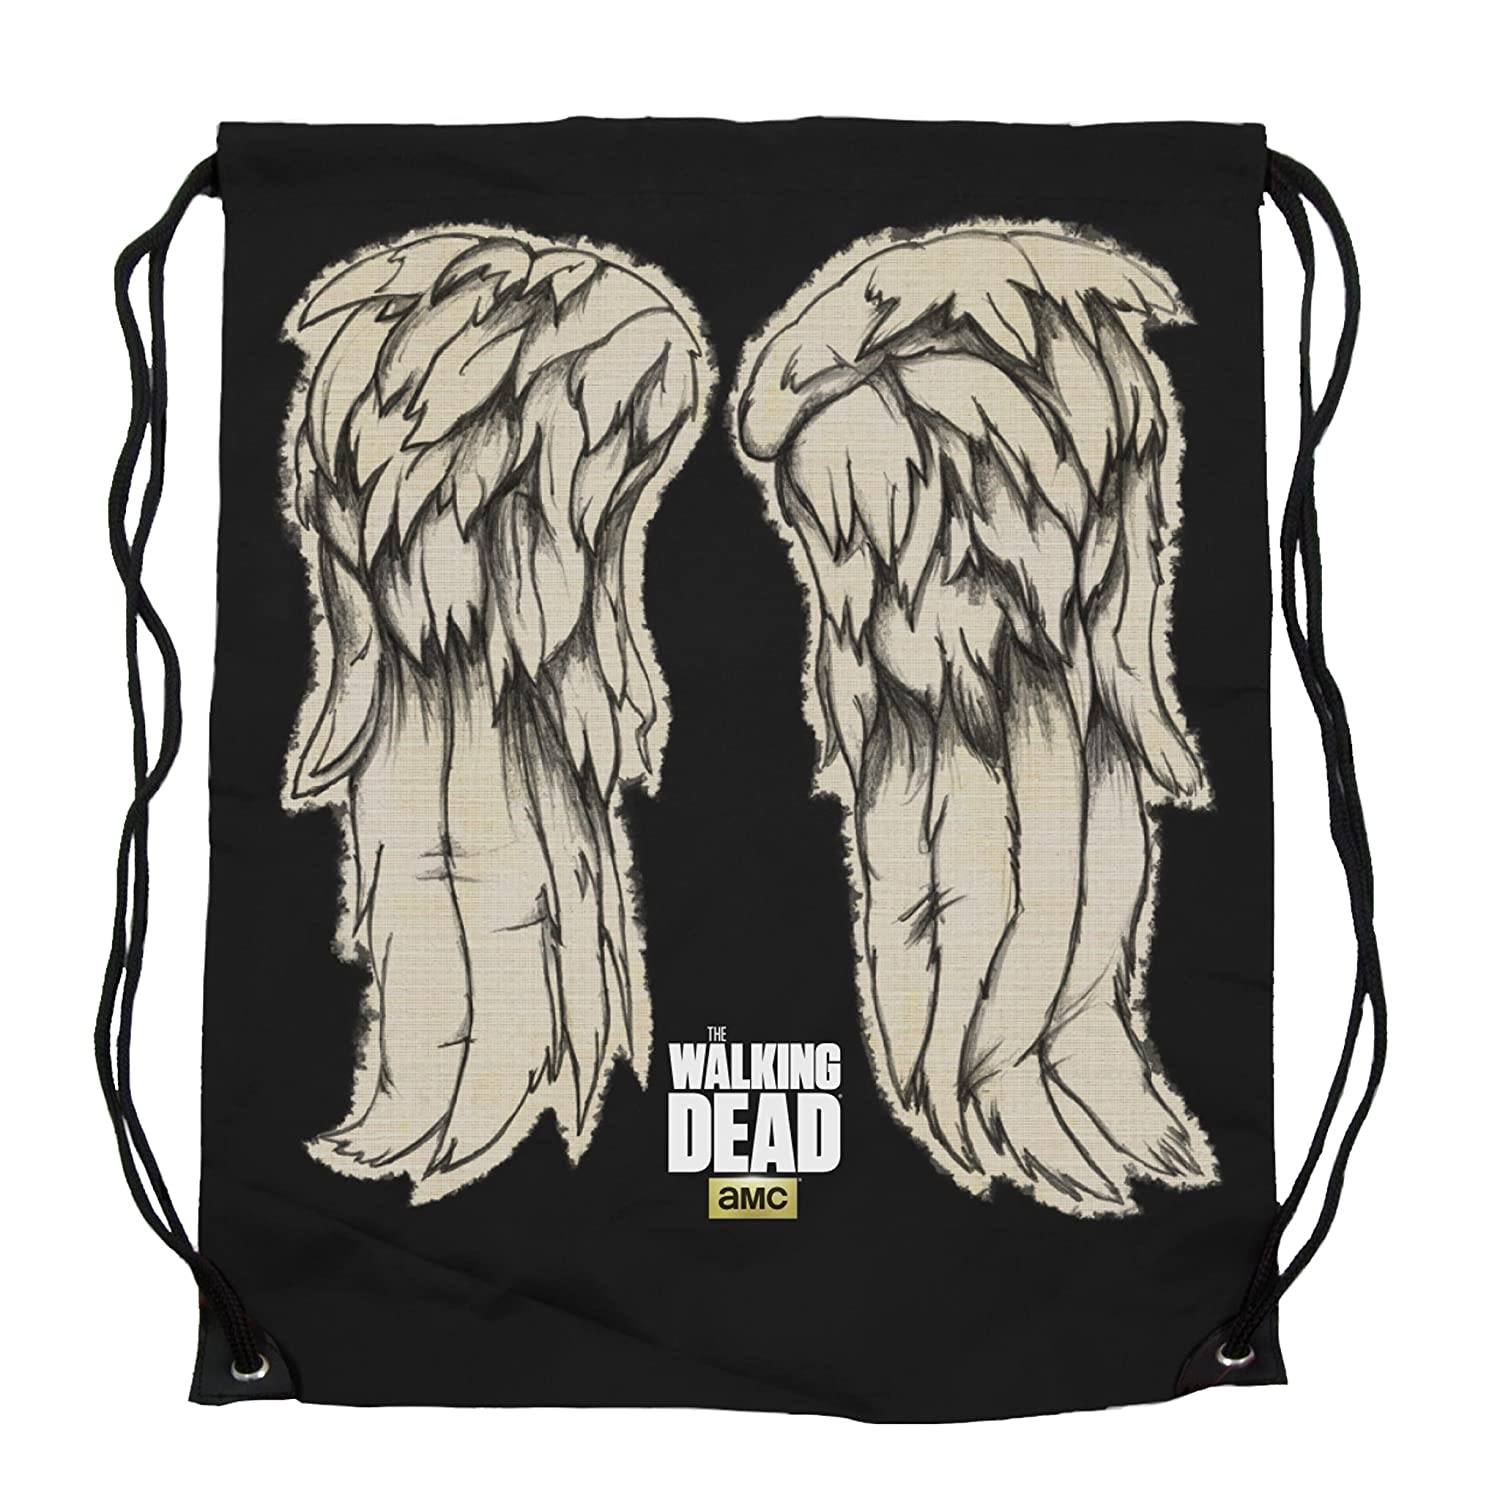 The Walking Dead Daryl Dixon Wings Cinch Bag Toy Zany